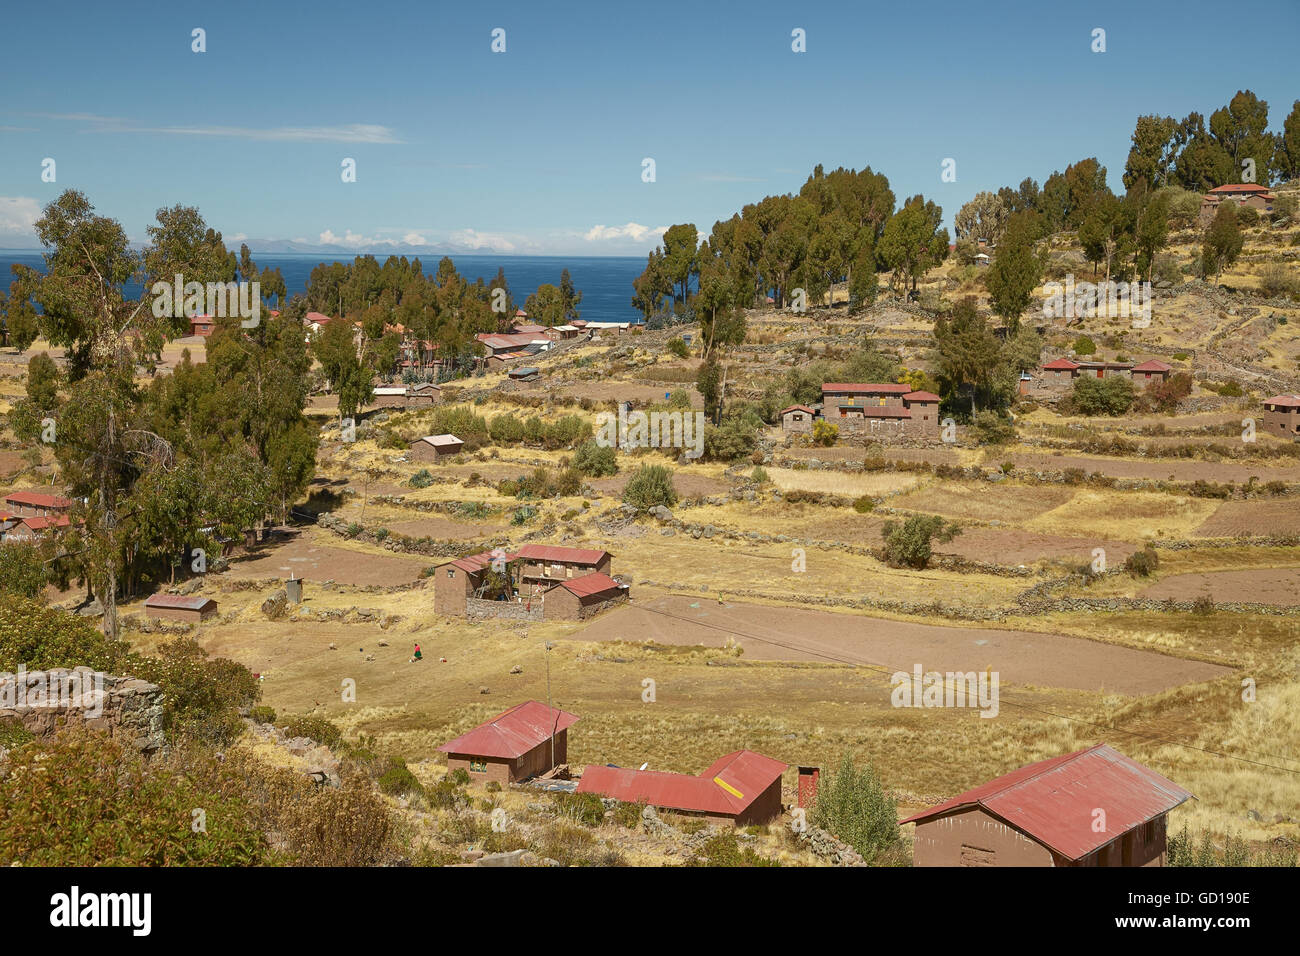 Houses of Local Peruvian People Living on Taquile Island (Isla Taquile) at Lake Titicaca  in Puno Peru. - Stock Image